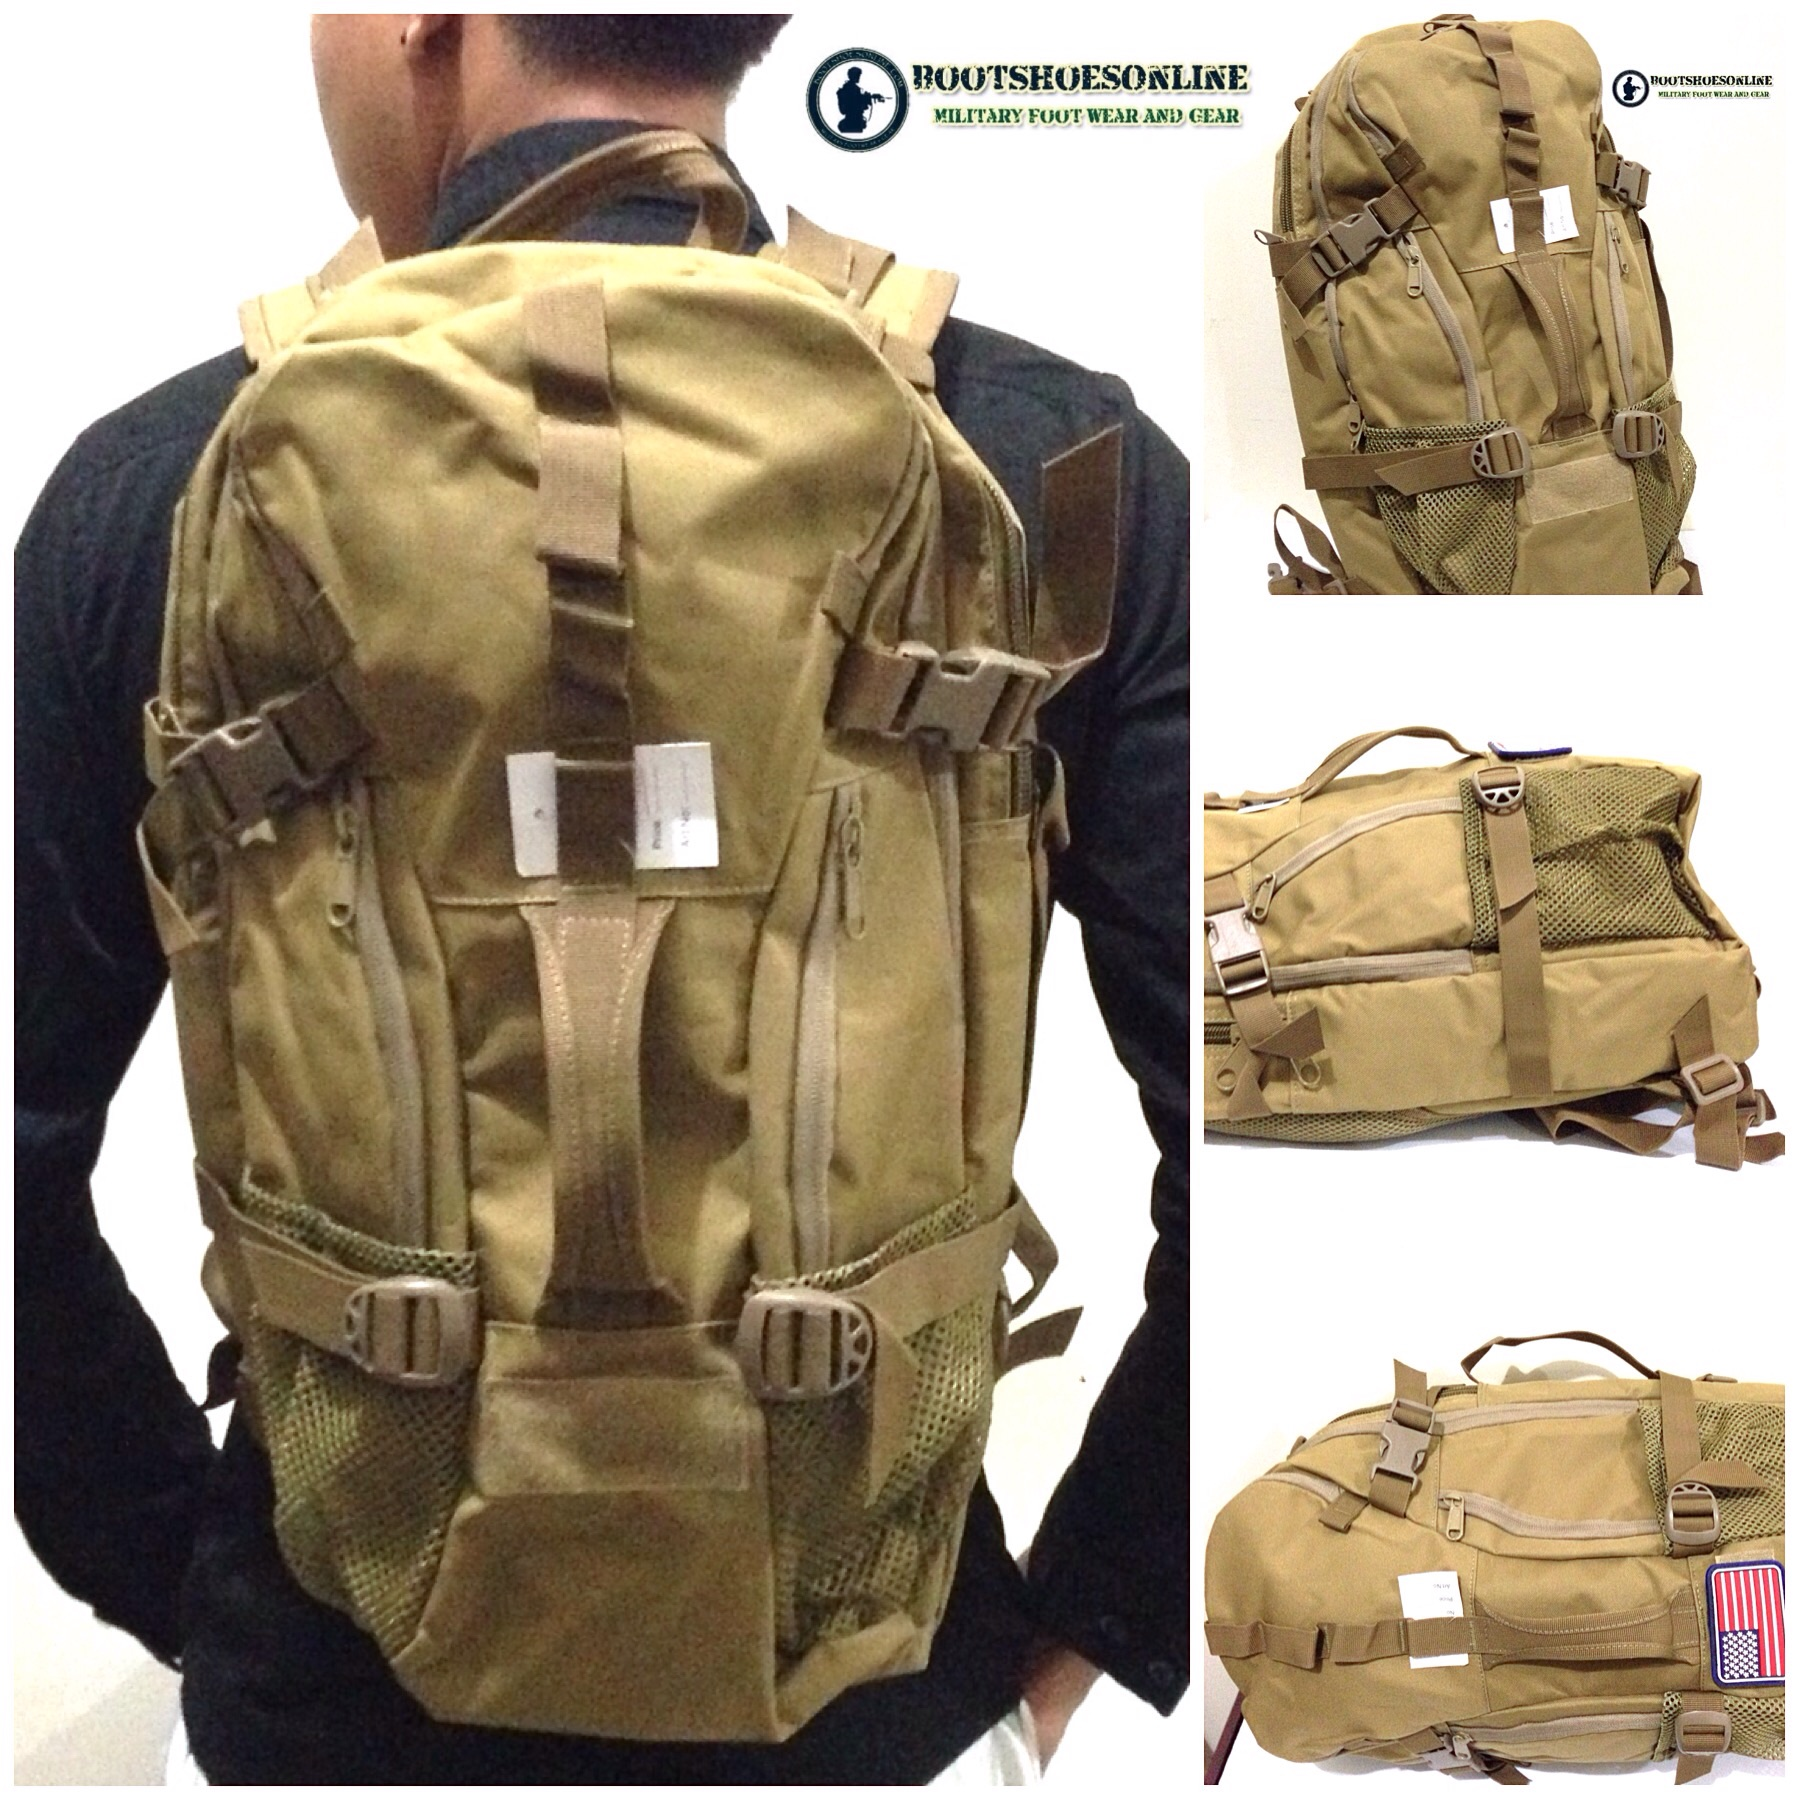 Jual Tas ransel tactical backpack outdoor military bag 40L multifungsi bootshoesonline